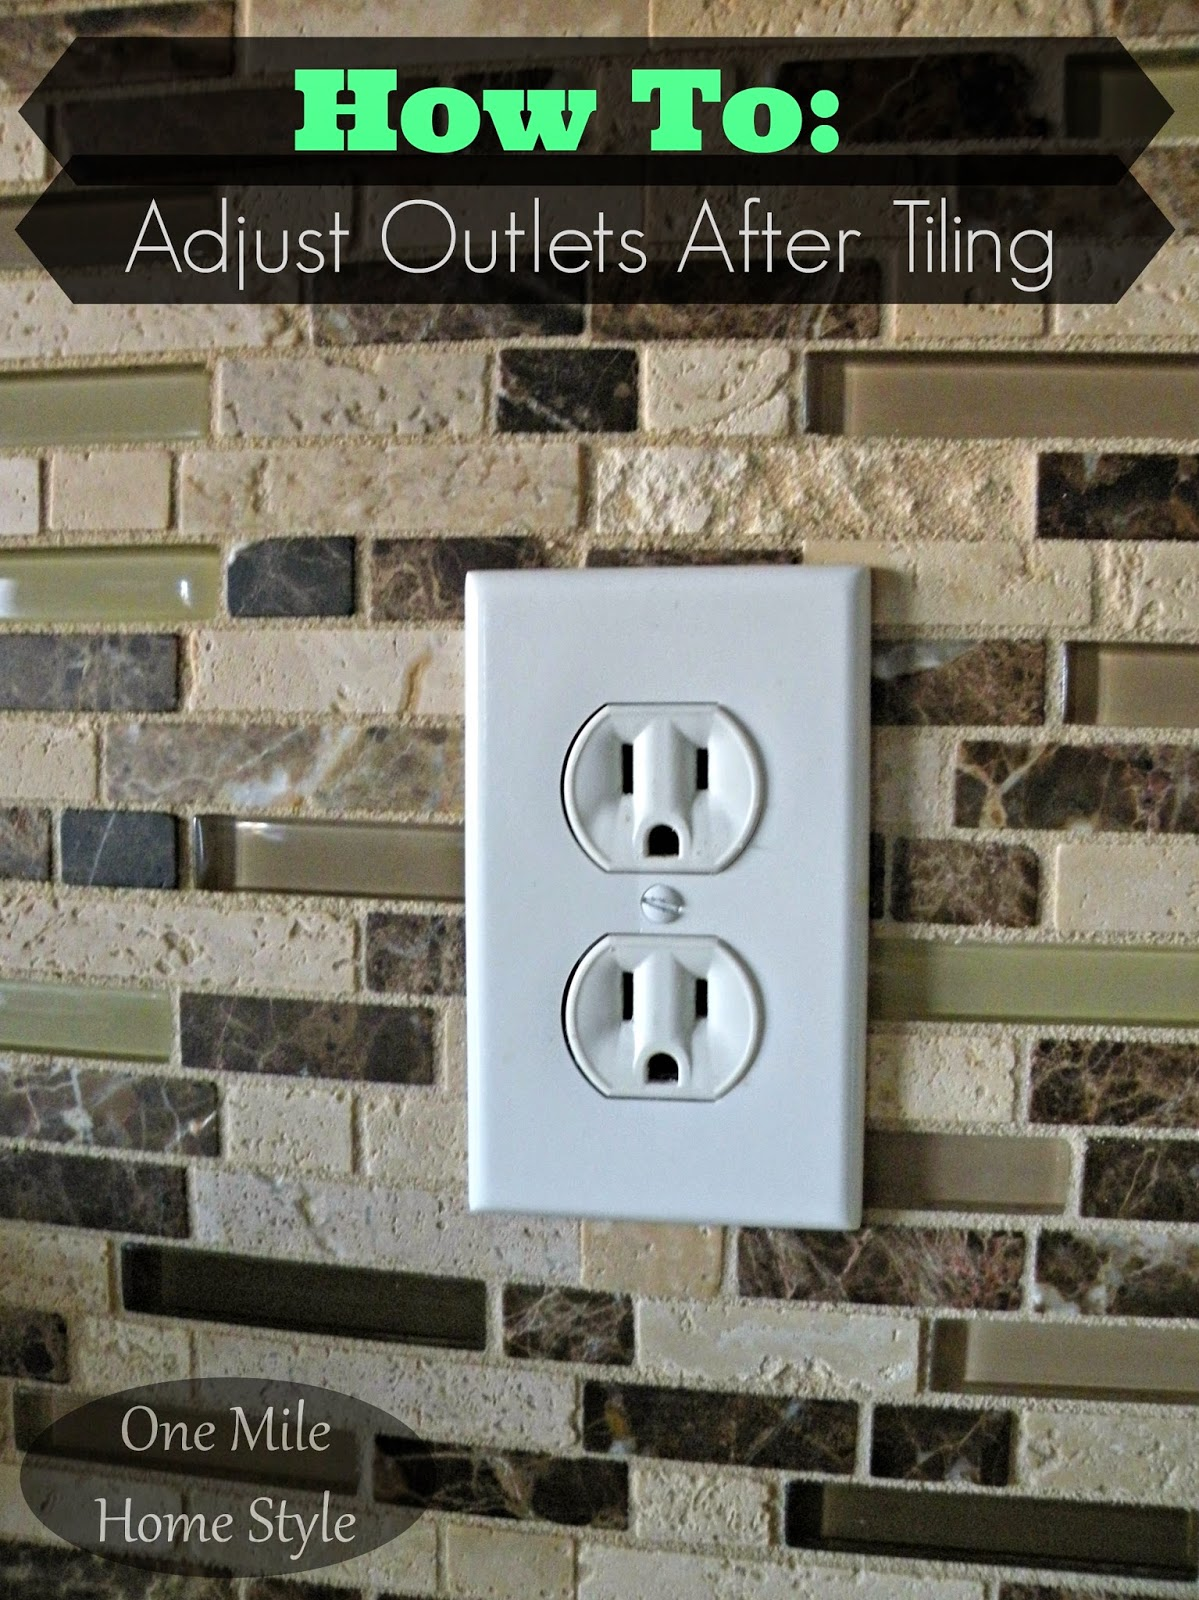 How To Adjust Electrical Outlets After Tiling | One Mile Home Style